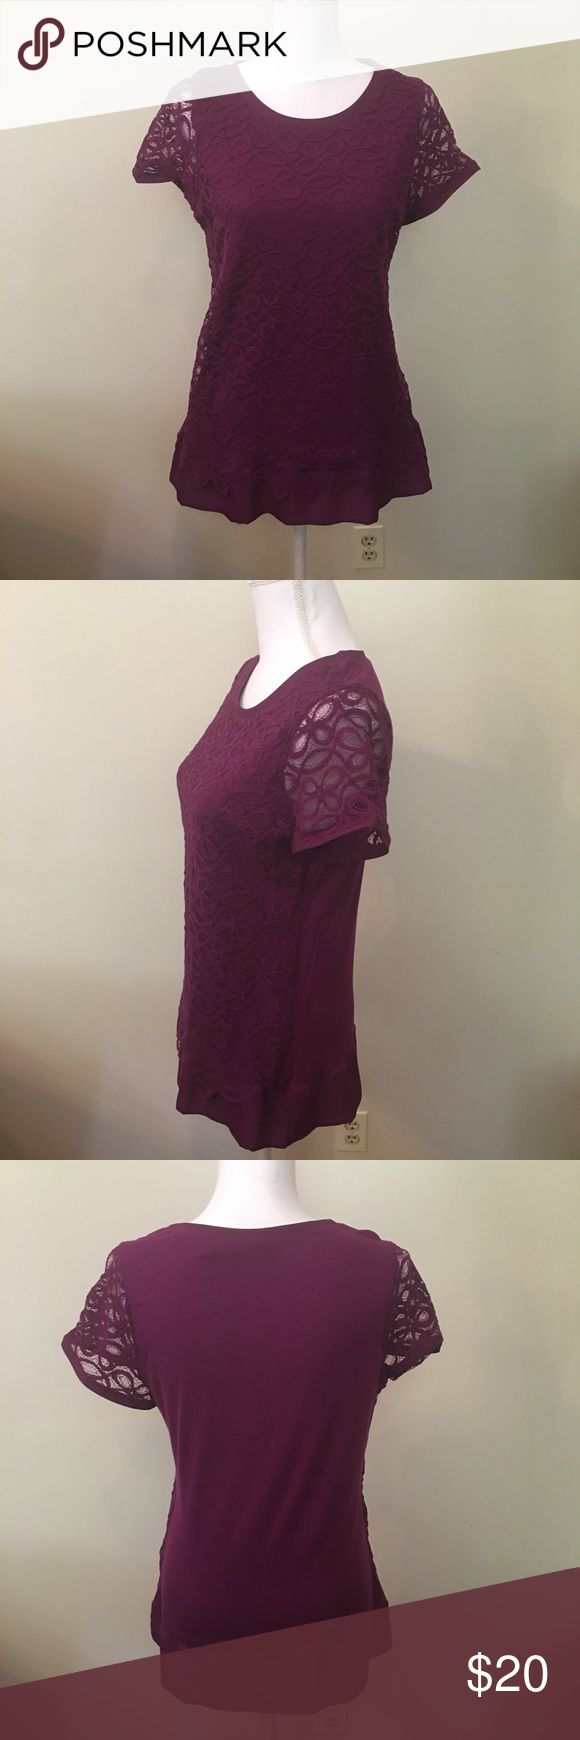 Purple Tee from Limited Cute purple T-shirt with lace detailing on front and sleeves (back and lining is 100% rayon). Size large but I'd say it runs small and fits more like a medium. New without tag The Limited Tops Tees - Short Sleeve